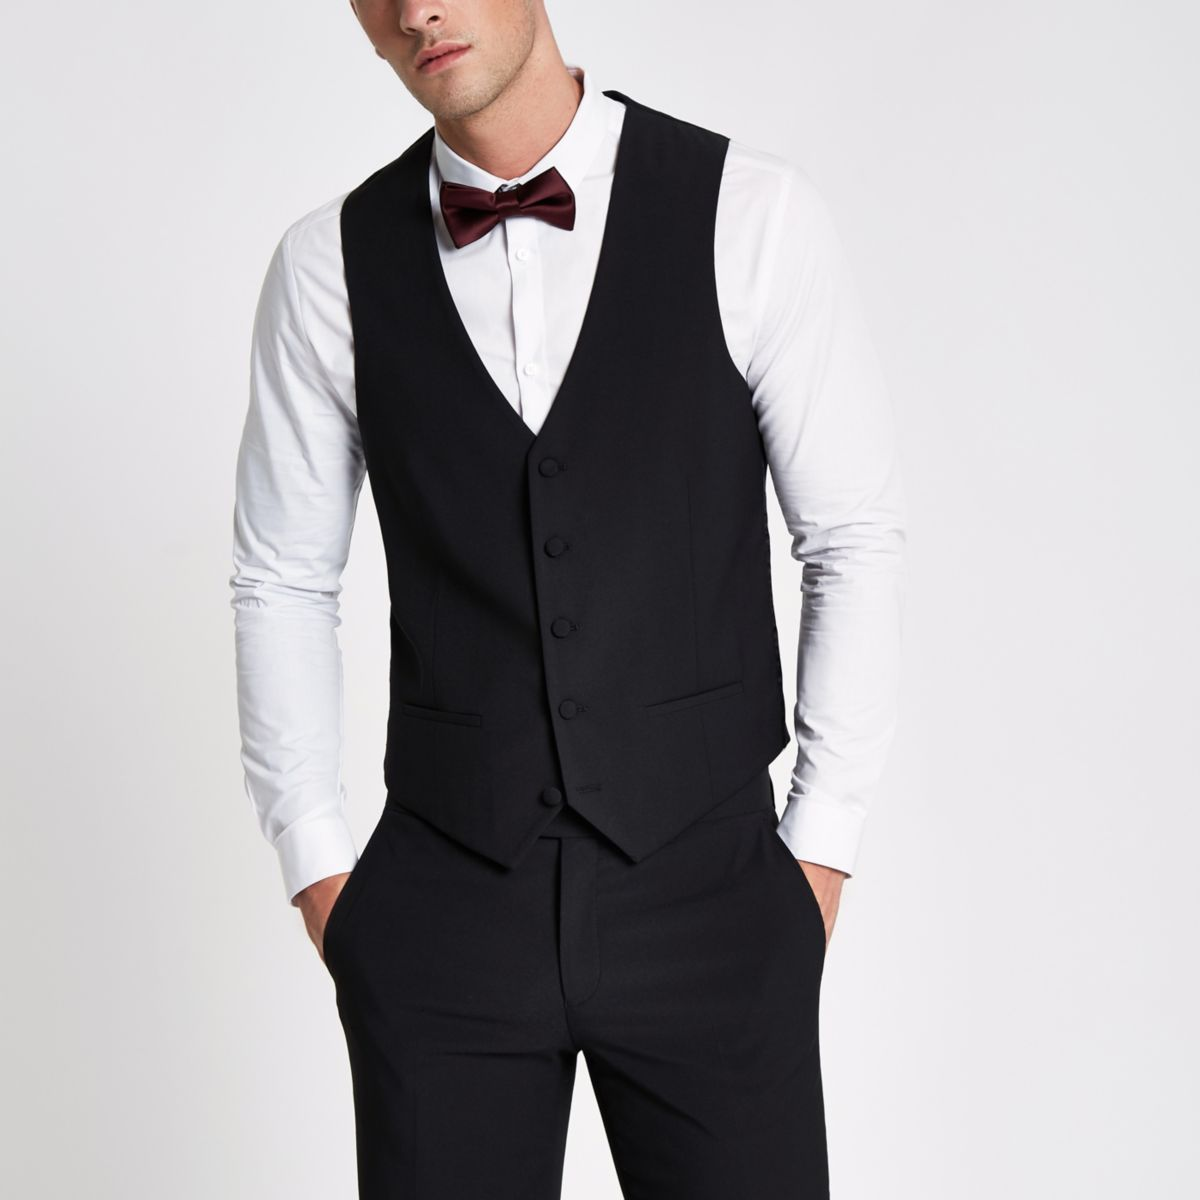 Aug 25,  · In the winter, I will sometimes wear a light grey waistcoat with a midnight blue suit, or a burgundy waistcoat with a mid-grey pinstripe. 2. Tattersall (or plaid) waistcoats with tweed or other country suits.